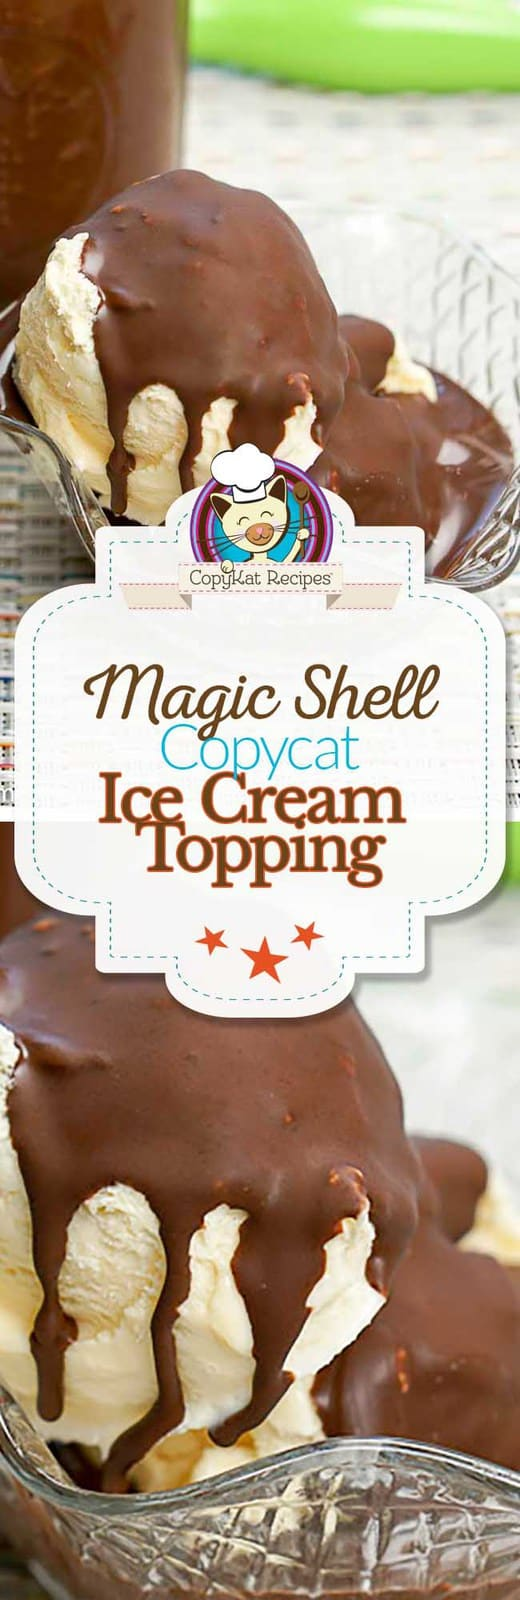 Recreate your own copycat recipe for Magic Shell Ice Cream Topping.